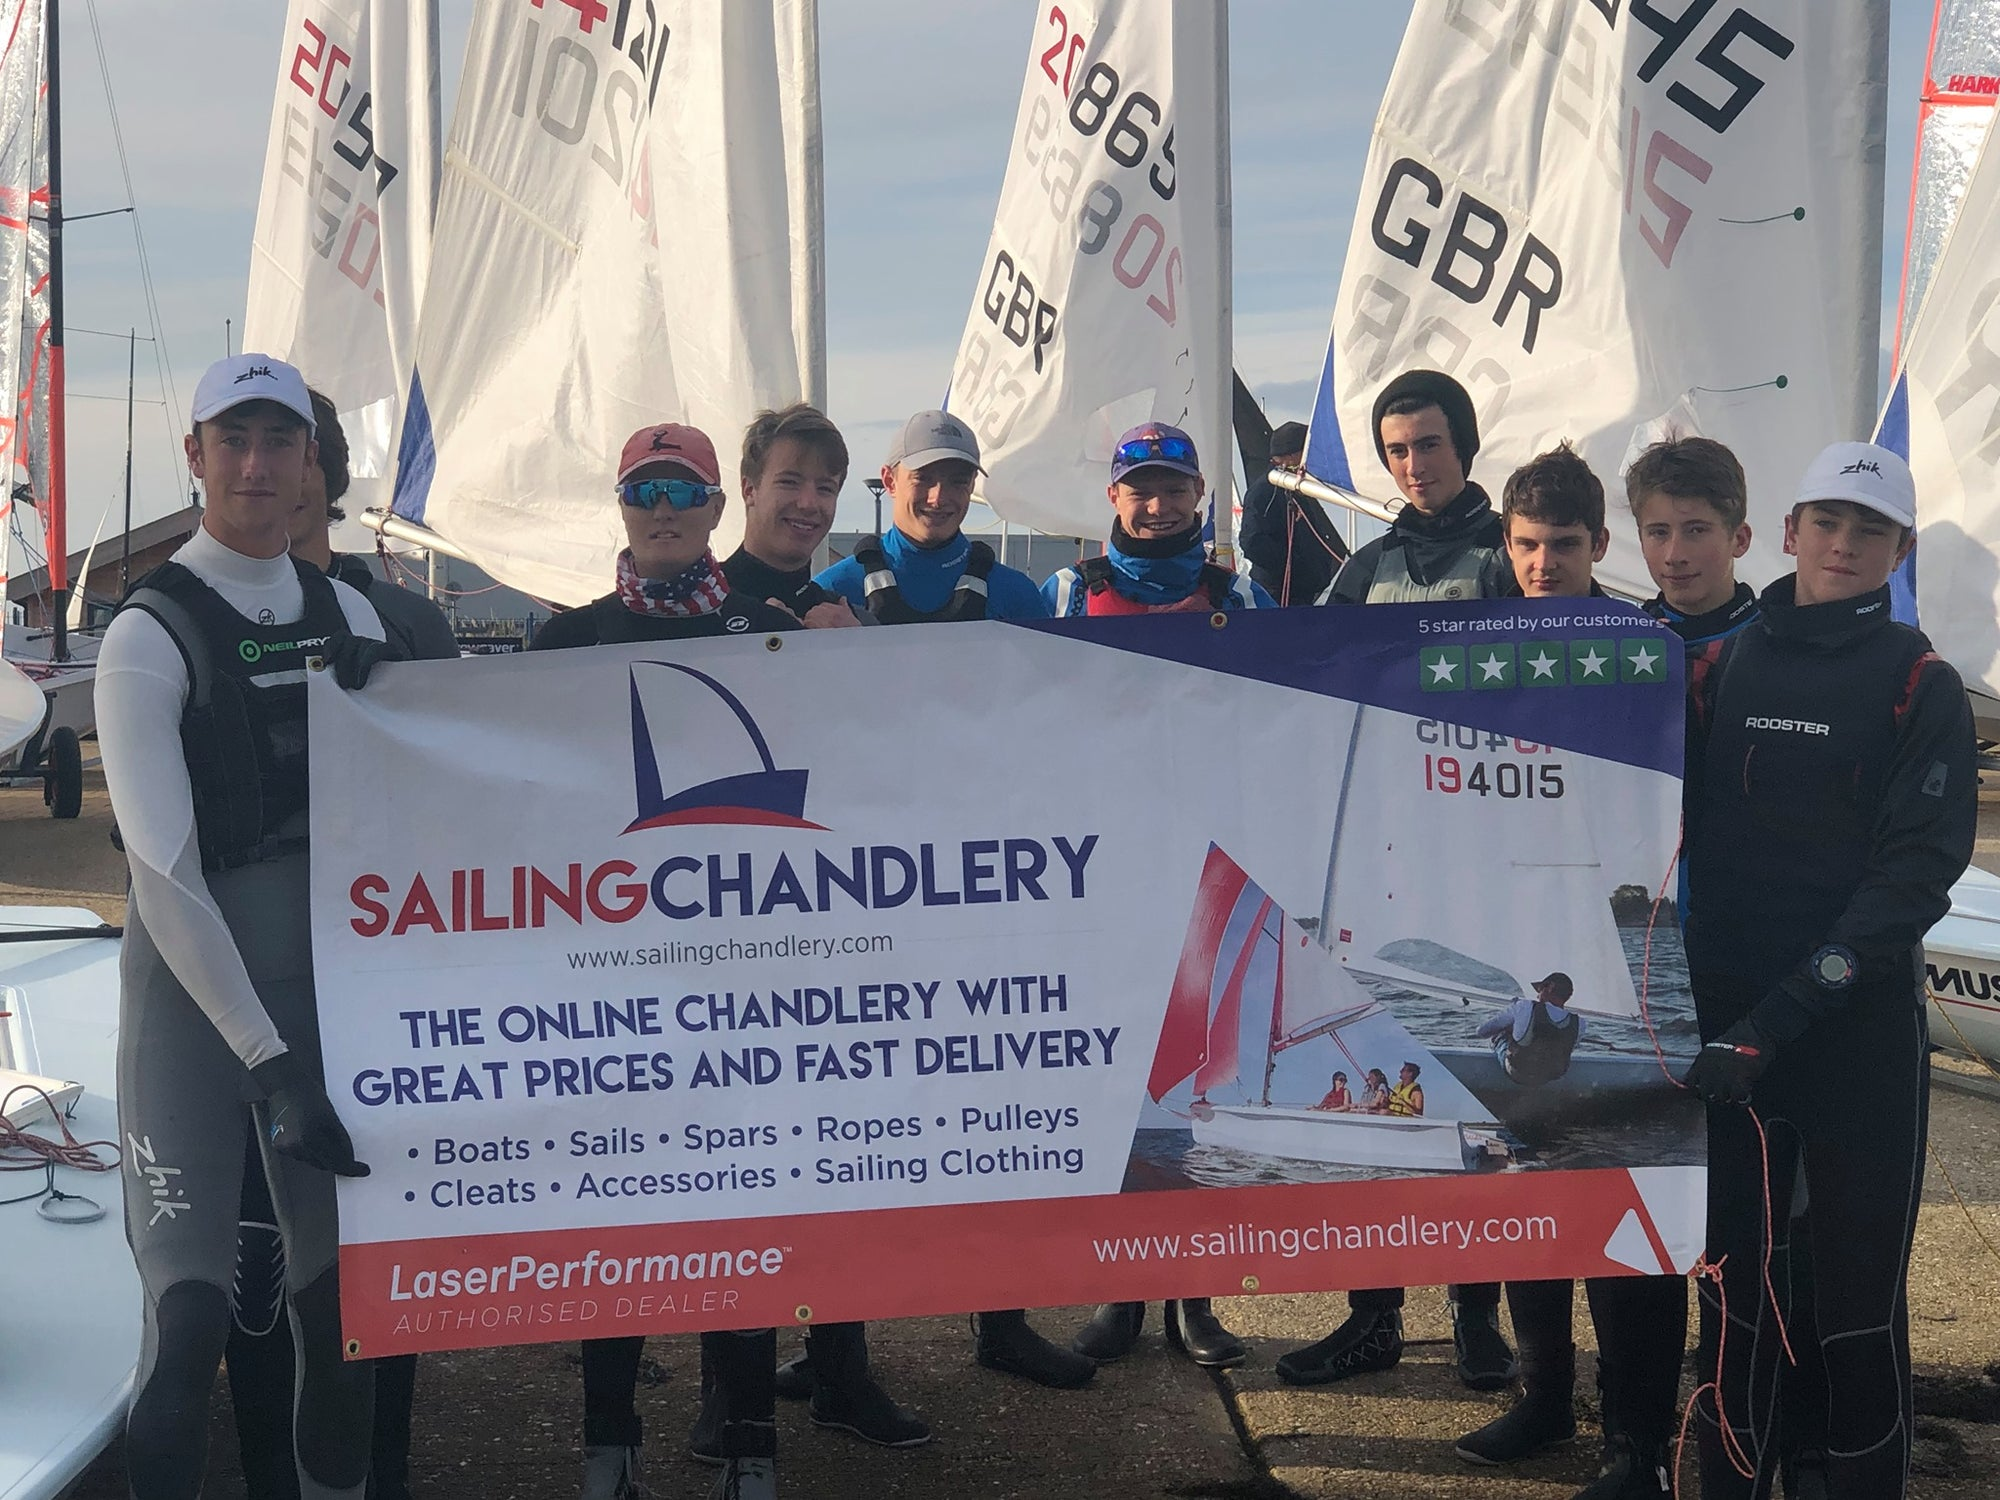 UK Laser Sailing Class Association Under 21 Training - Sponsored by Sailing Chandlery